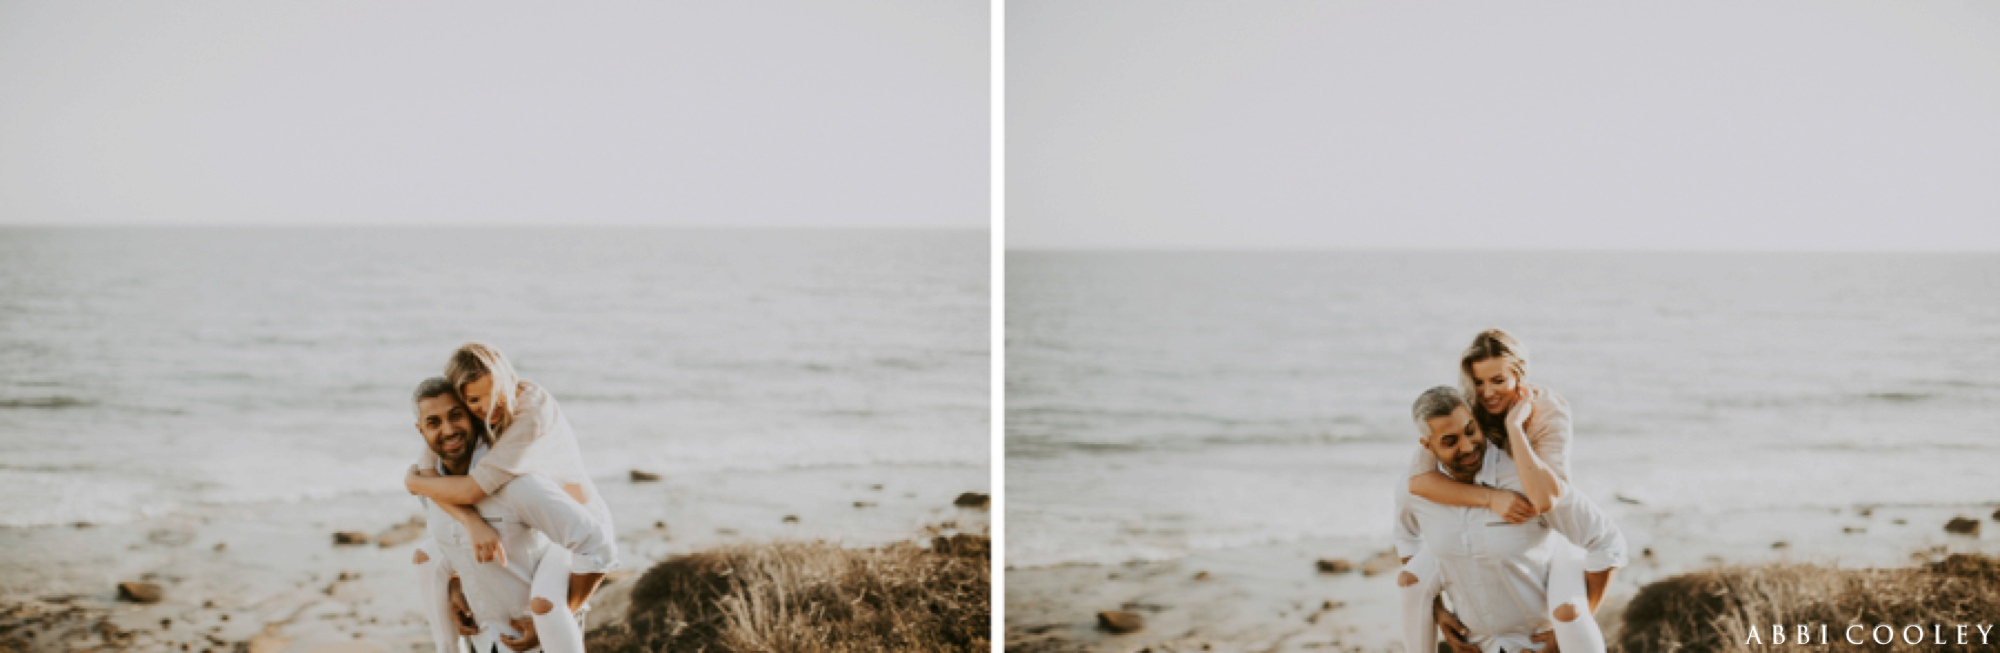 ABBI COOLEY NEWPORT BEACH ENGAGEMENT_0998